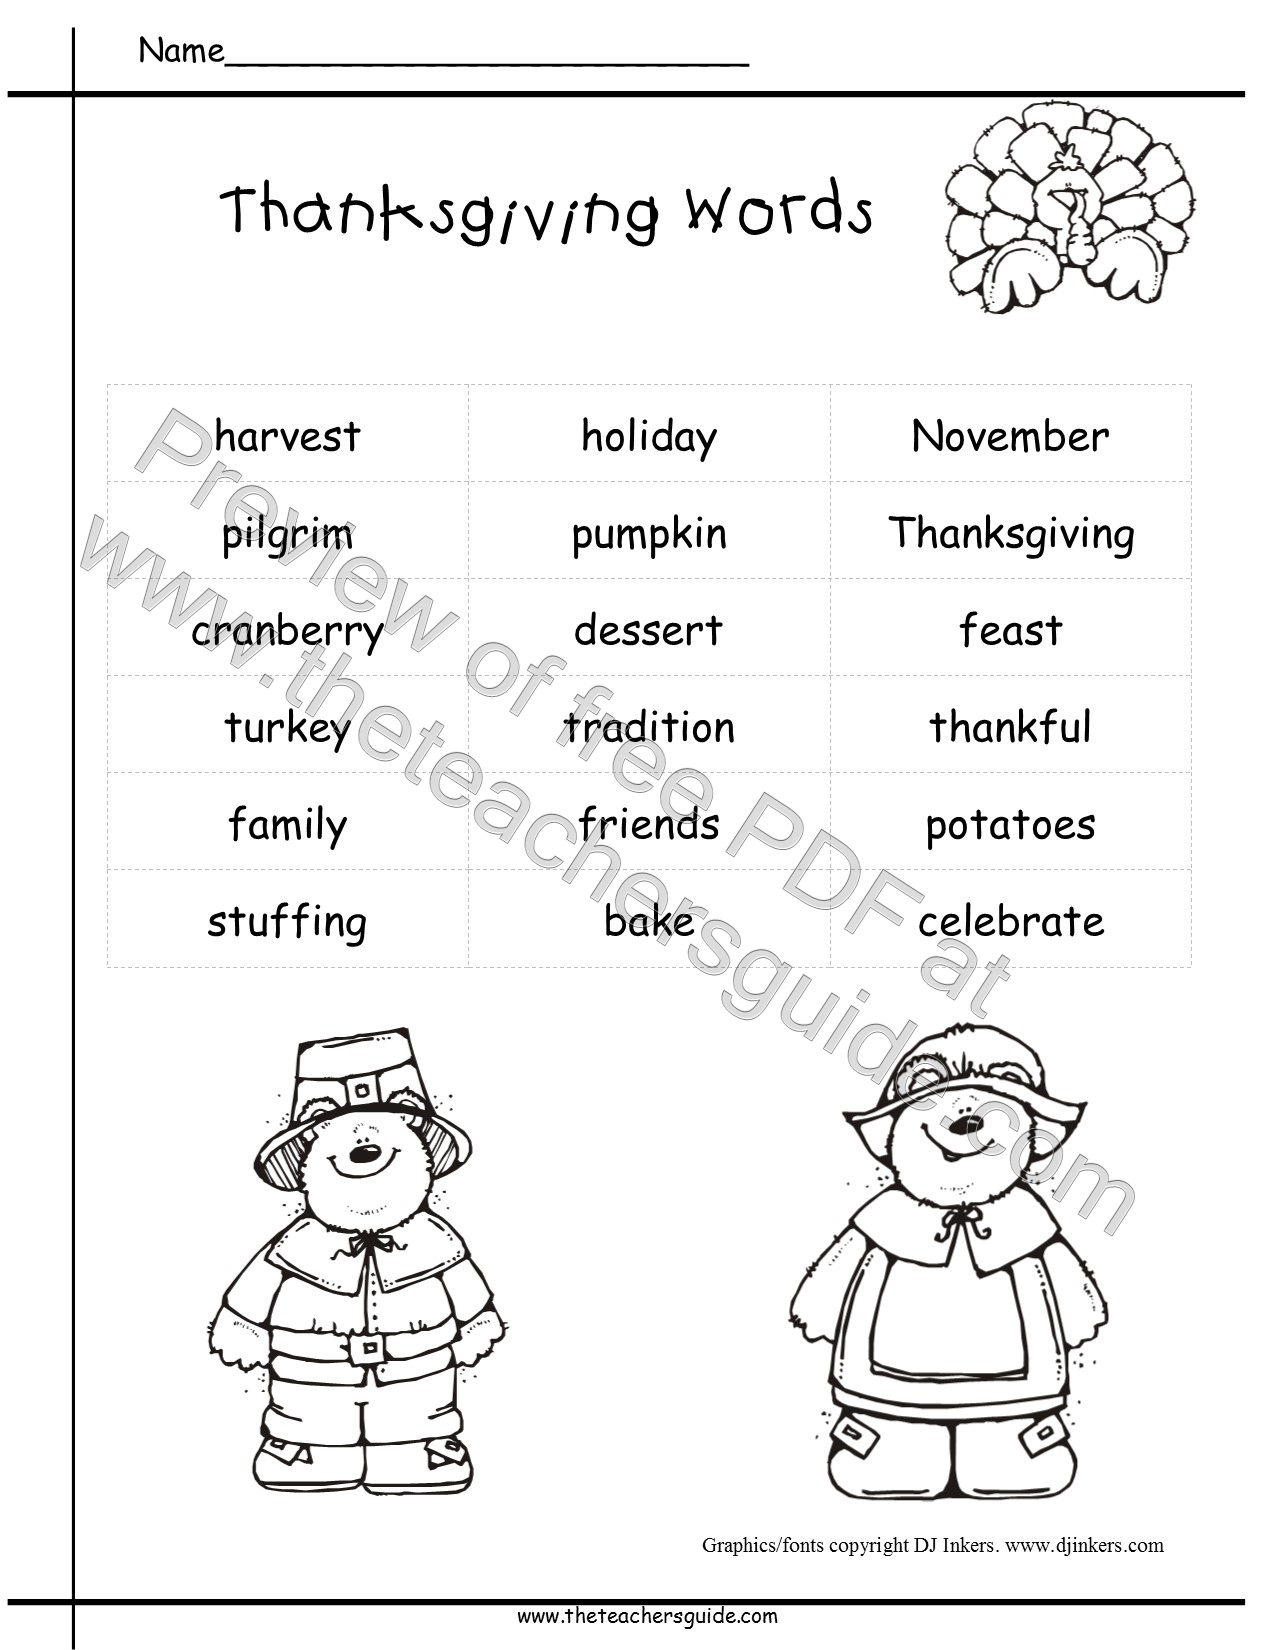 List of Synonyms and Antonyms of the Word: Thanksgiving